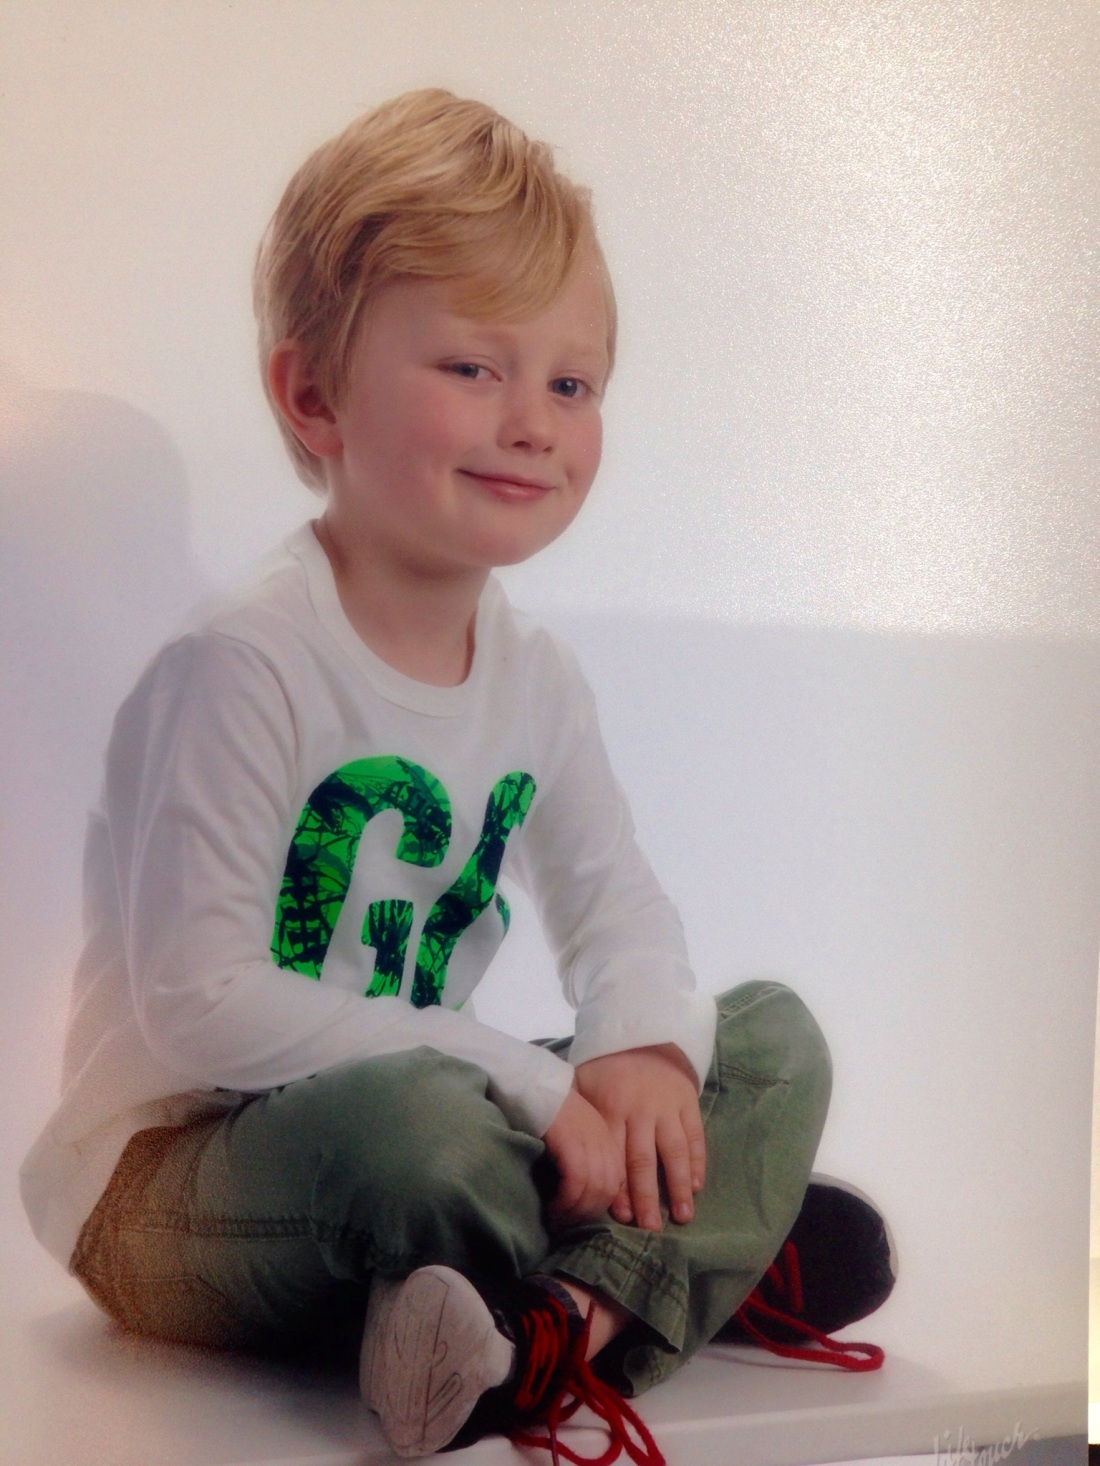 032516 Logan's school photo.jpg